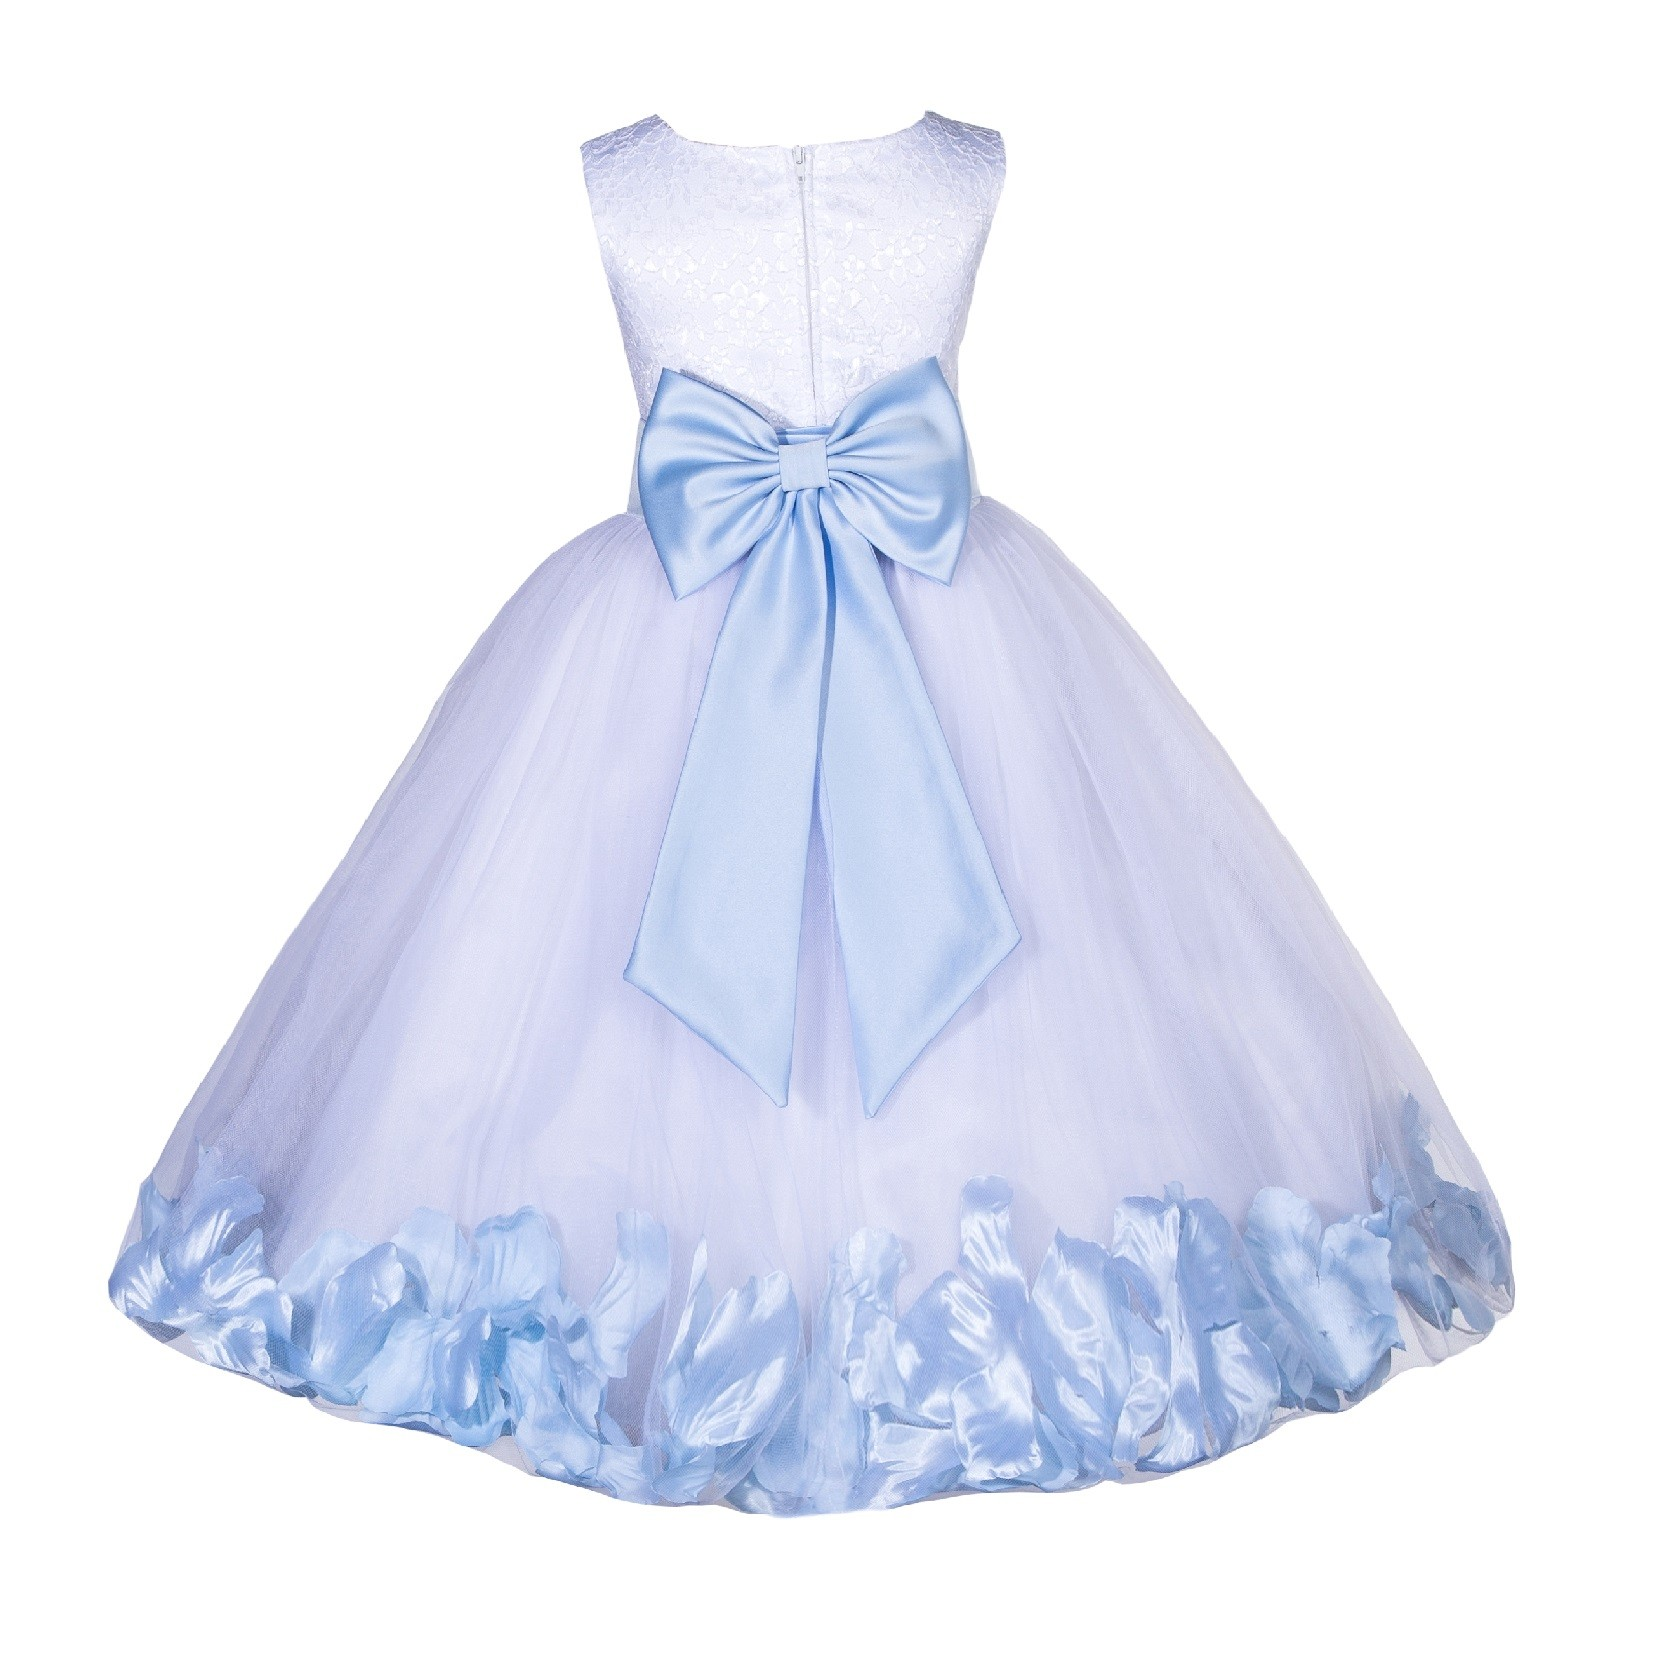 White Ice Blue Lace Top Tulle Floral Petals Flower Girl Dress 165t In